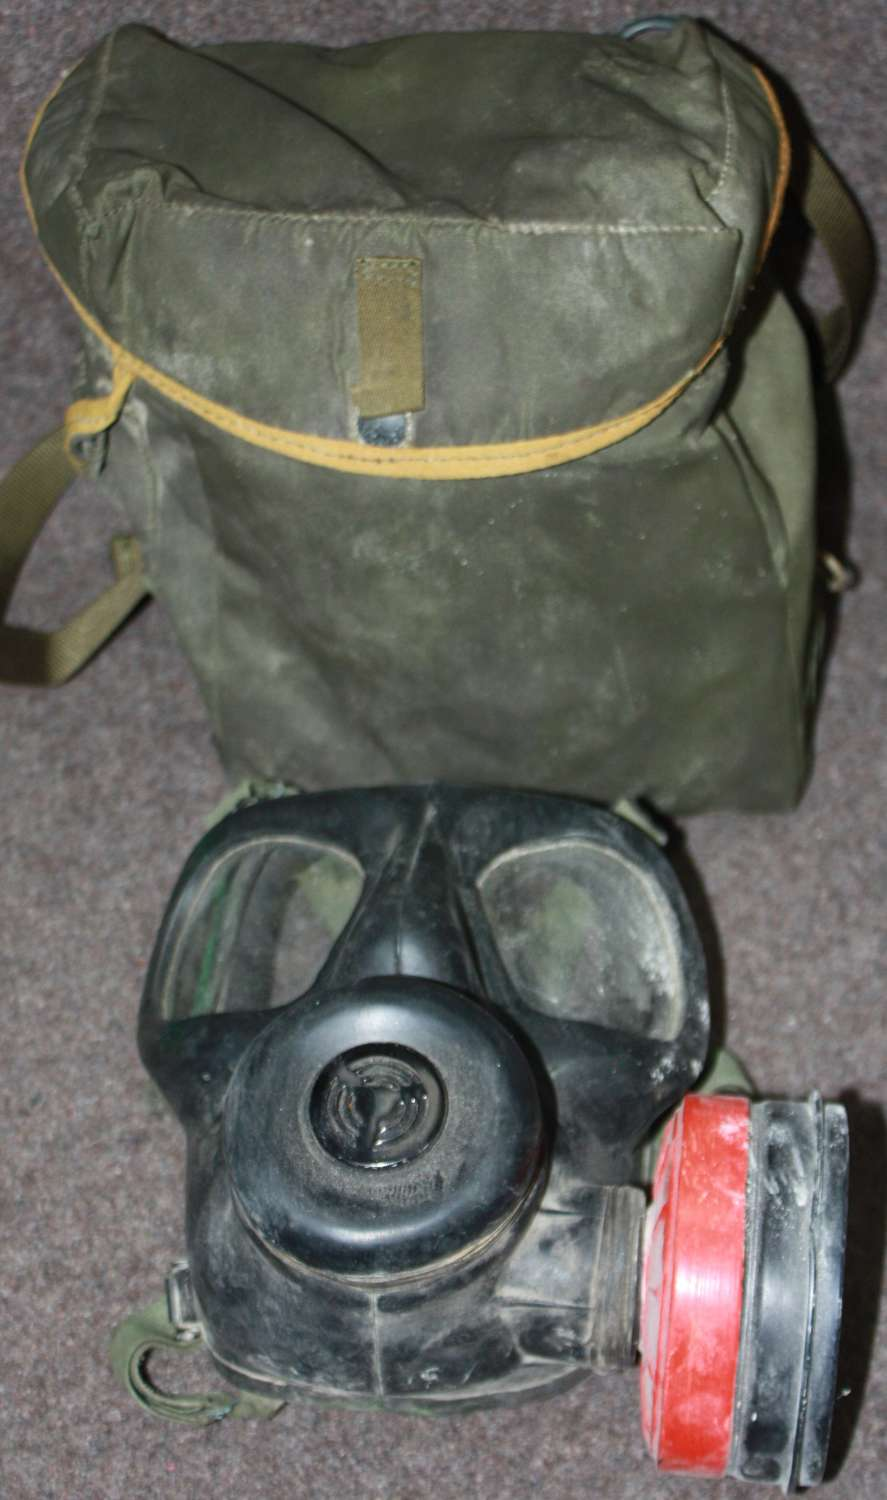 A GOOD USED EXAMPLE OF THE BRITISH 1978 DATED S6 GAS MASK